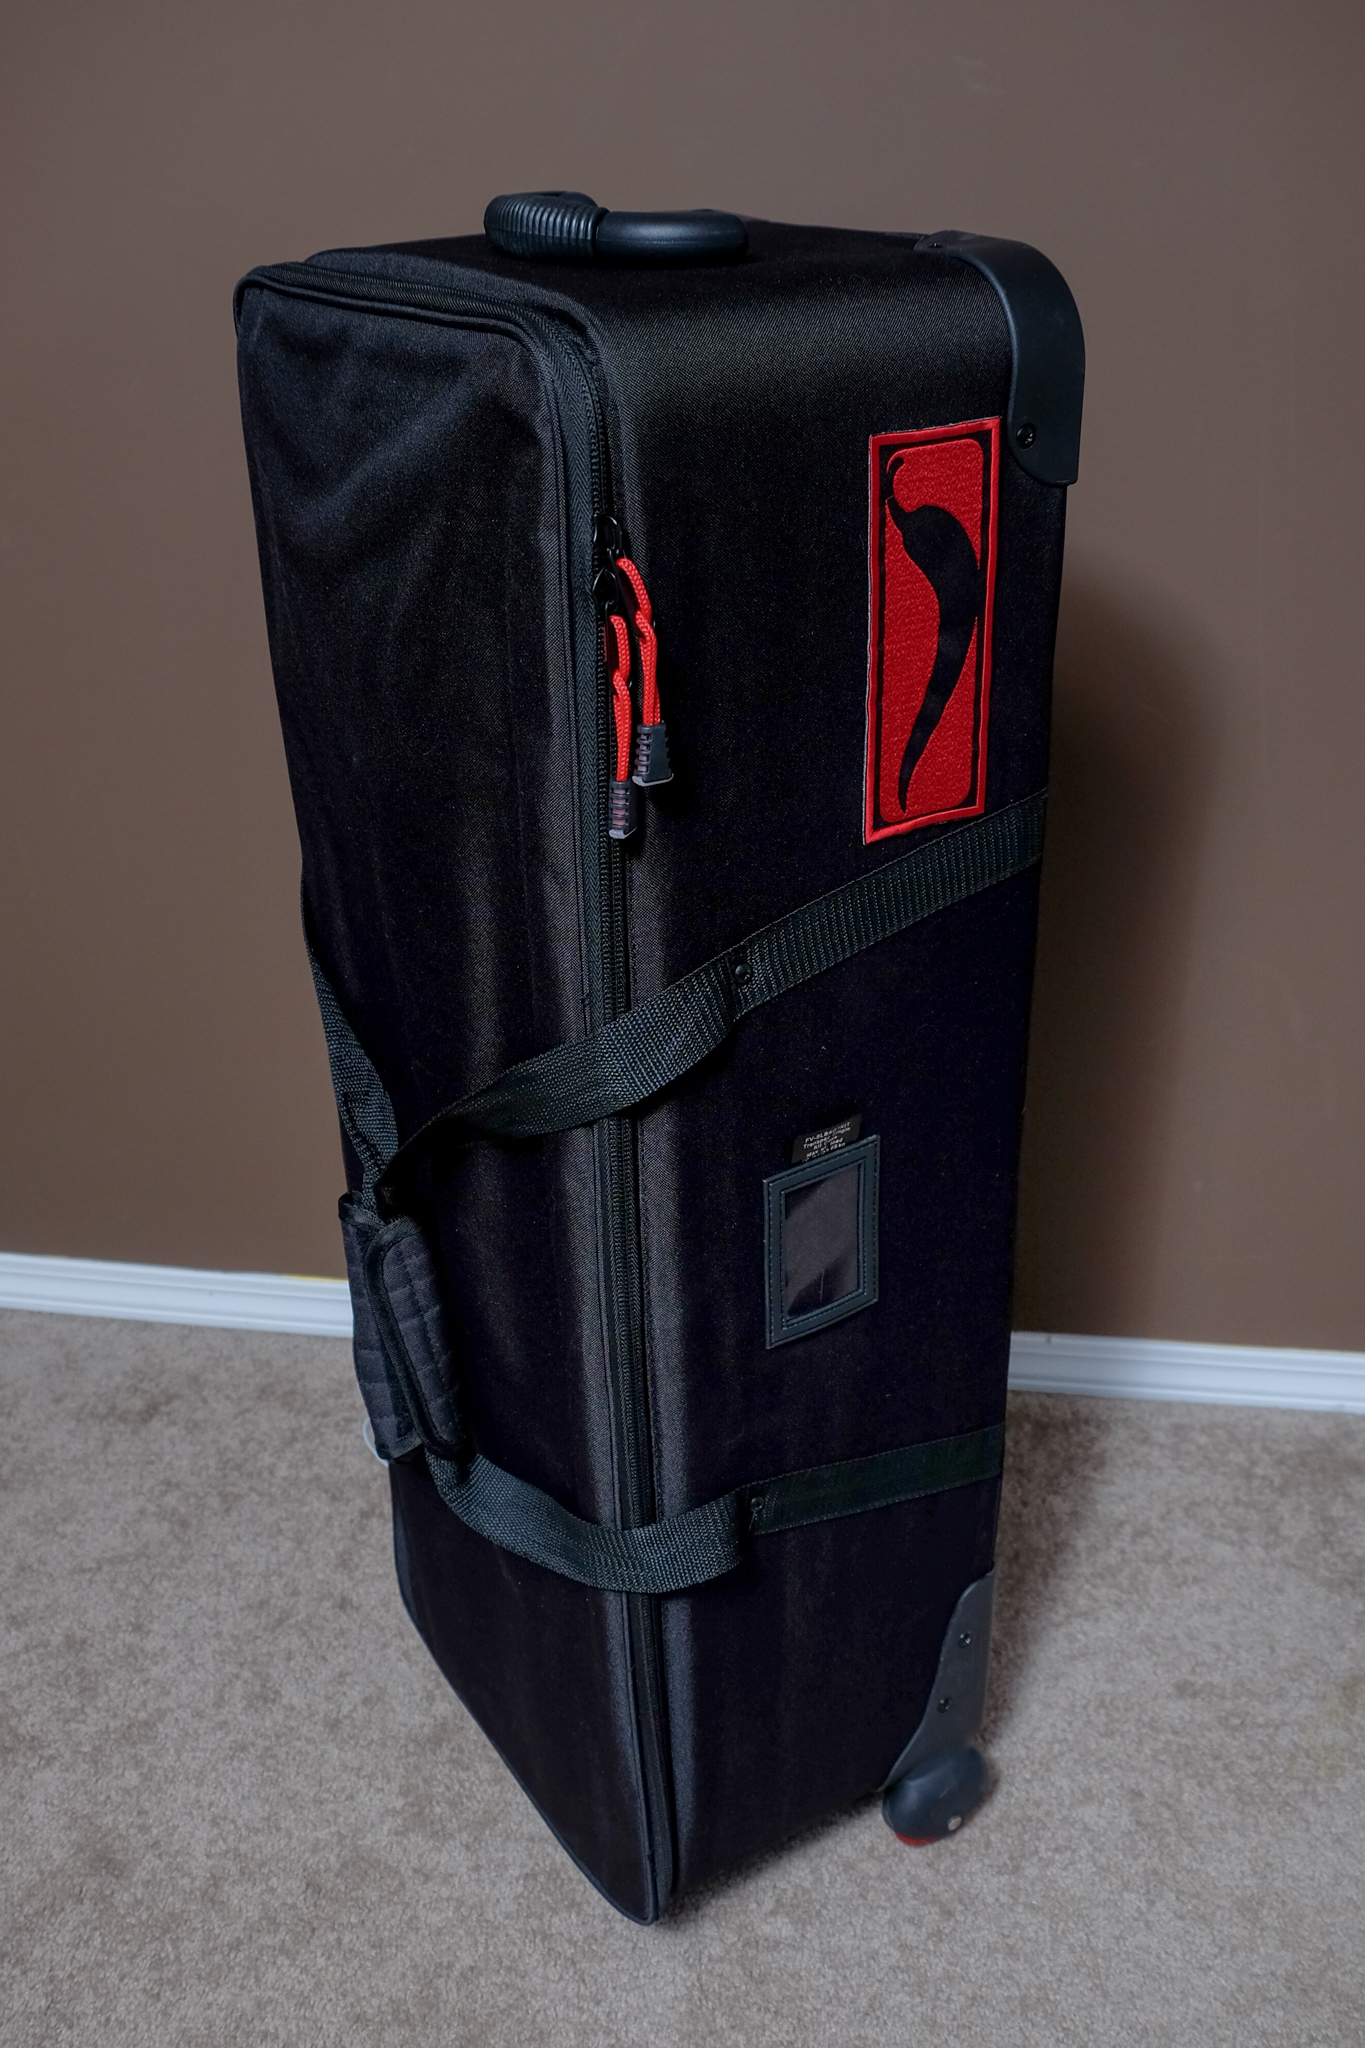 It's about as large as an oversizedgolf bag - but with a square footprint and wheels.